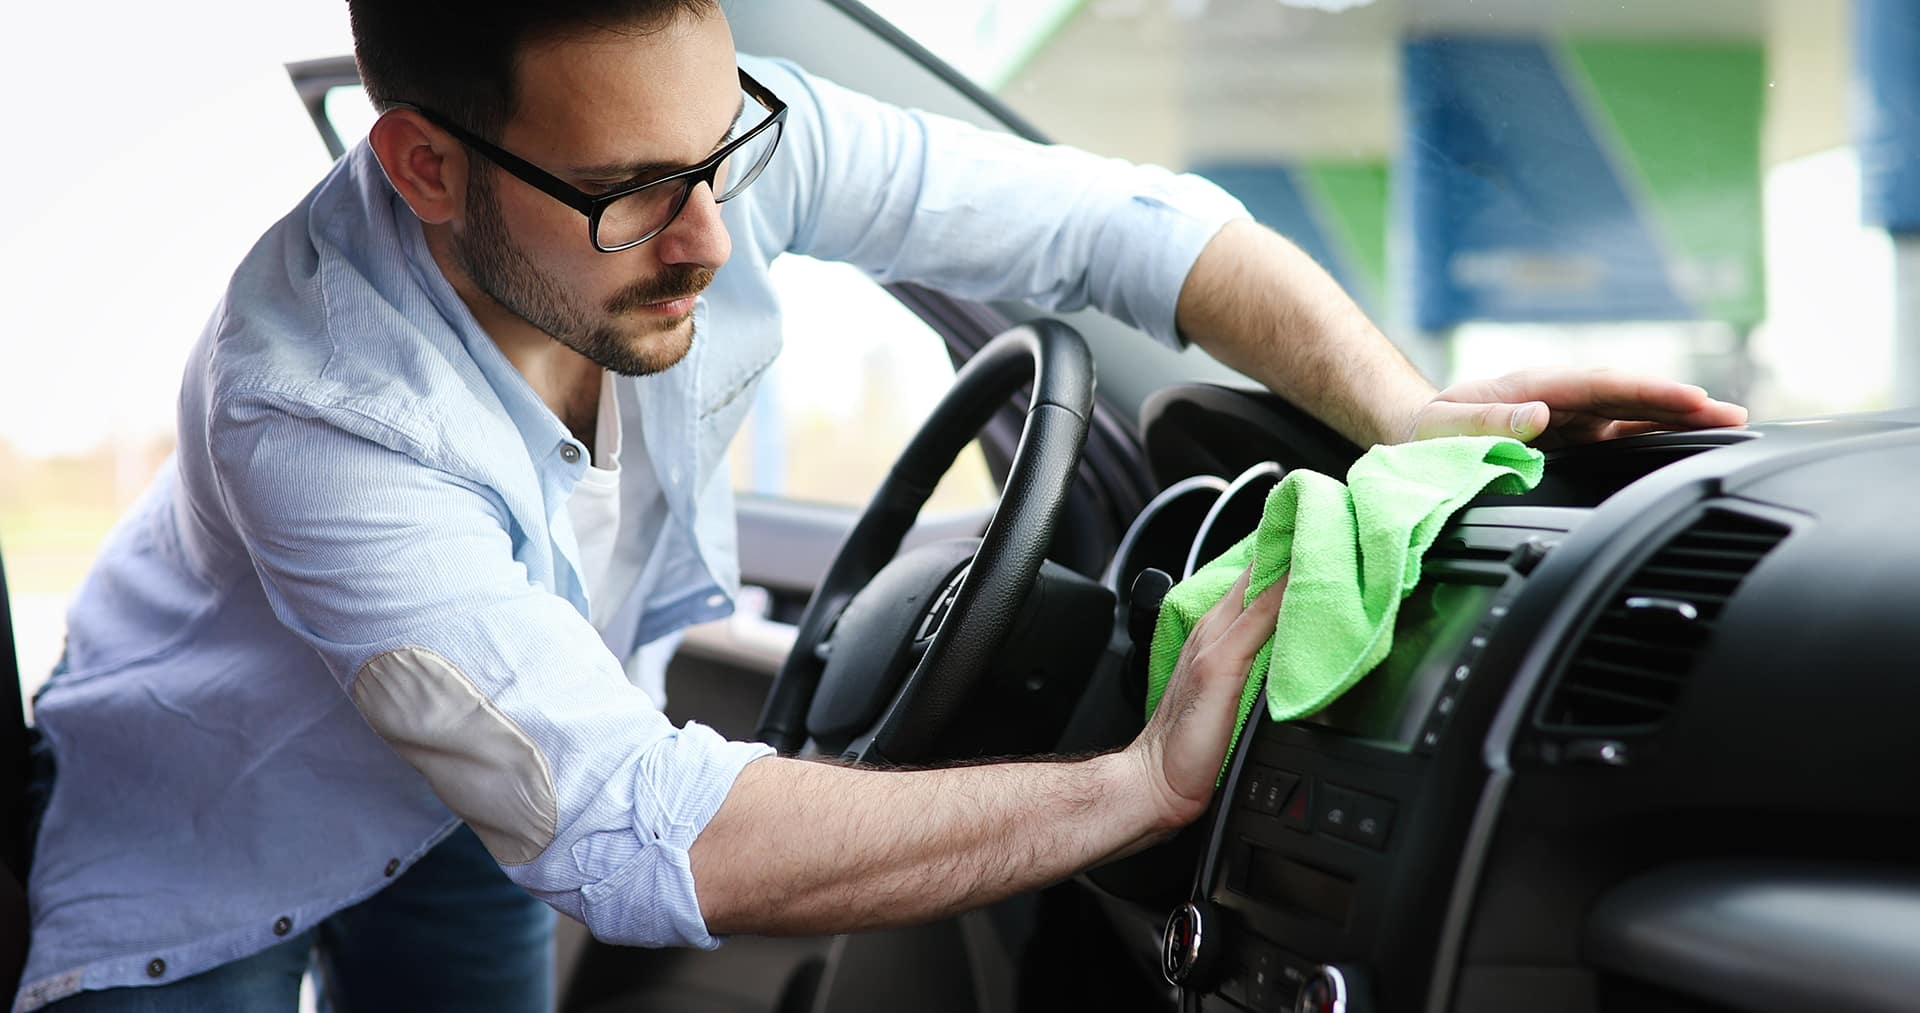 We Reveal The Seven Professional Car Cleaning Tips That Will Give You A Showroom Finish From Your Own Home!